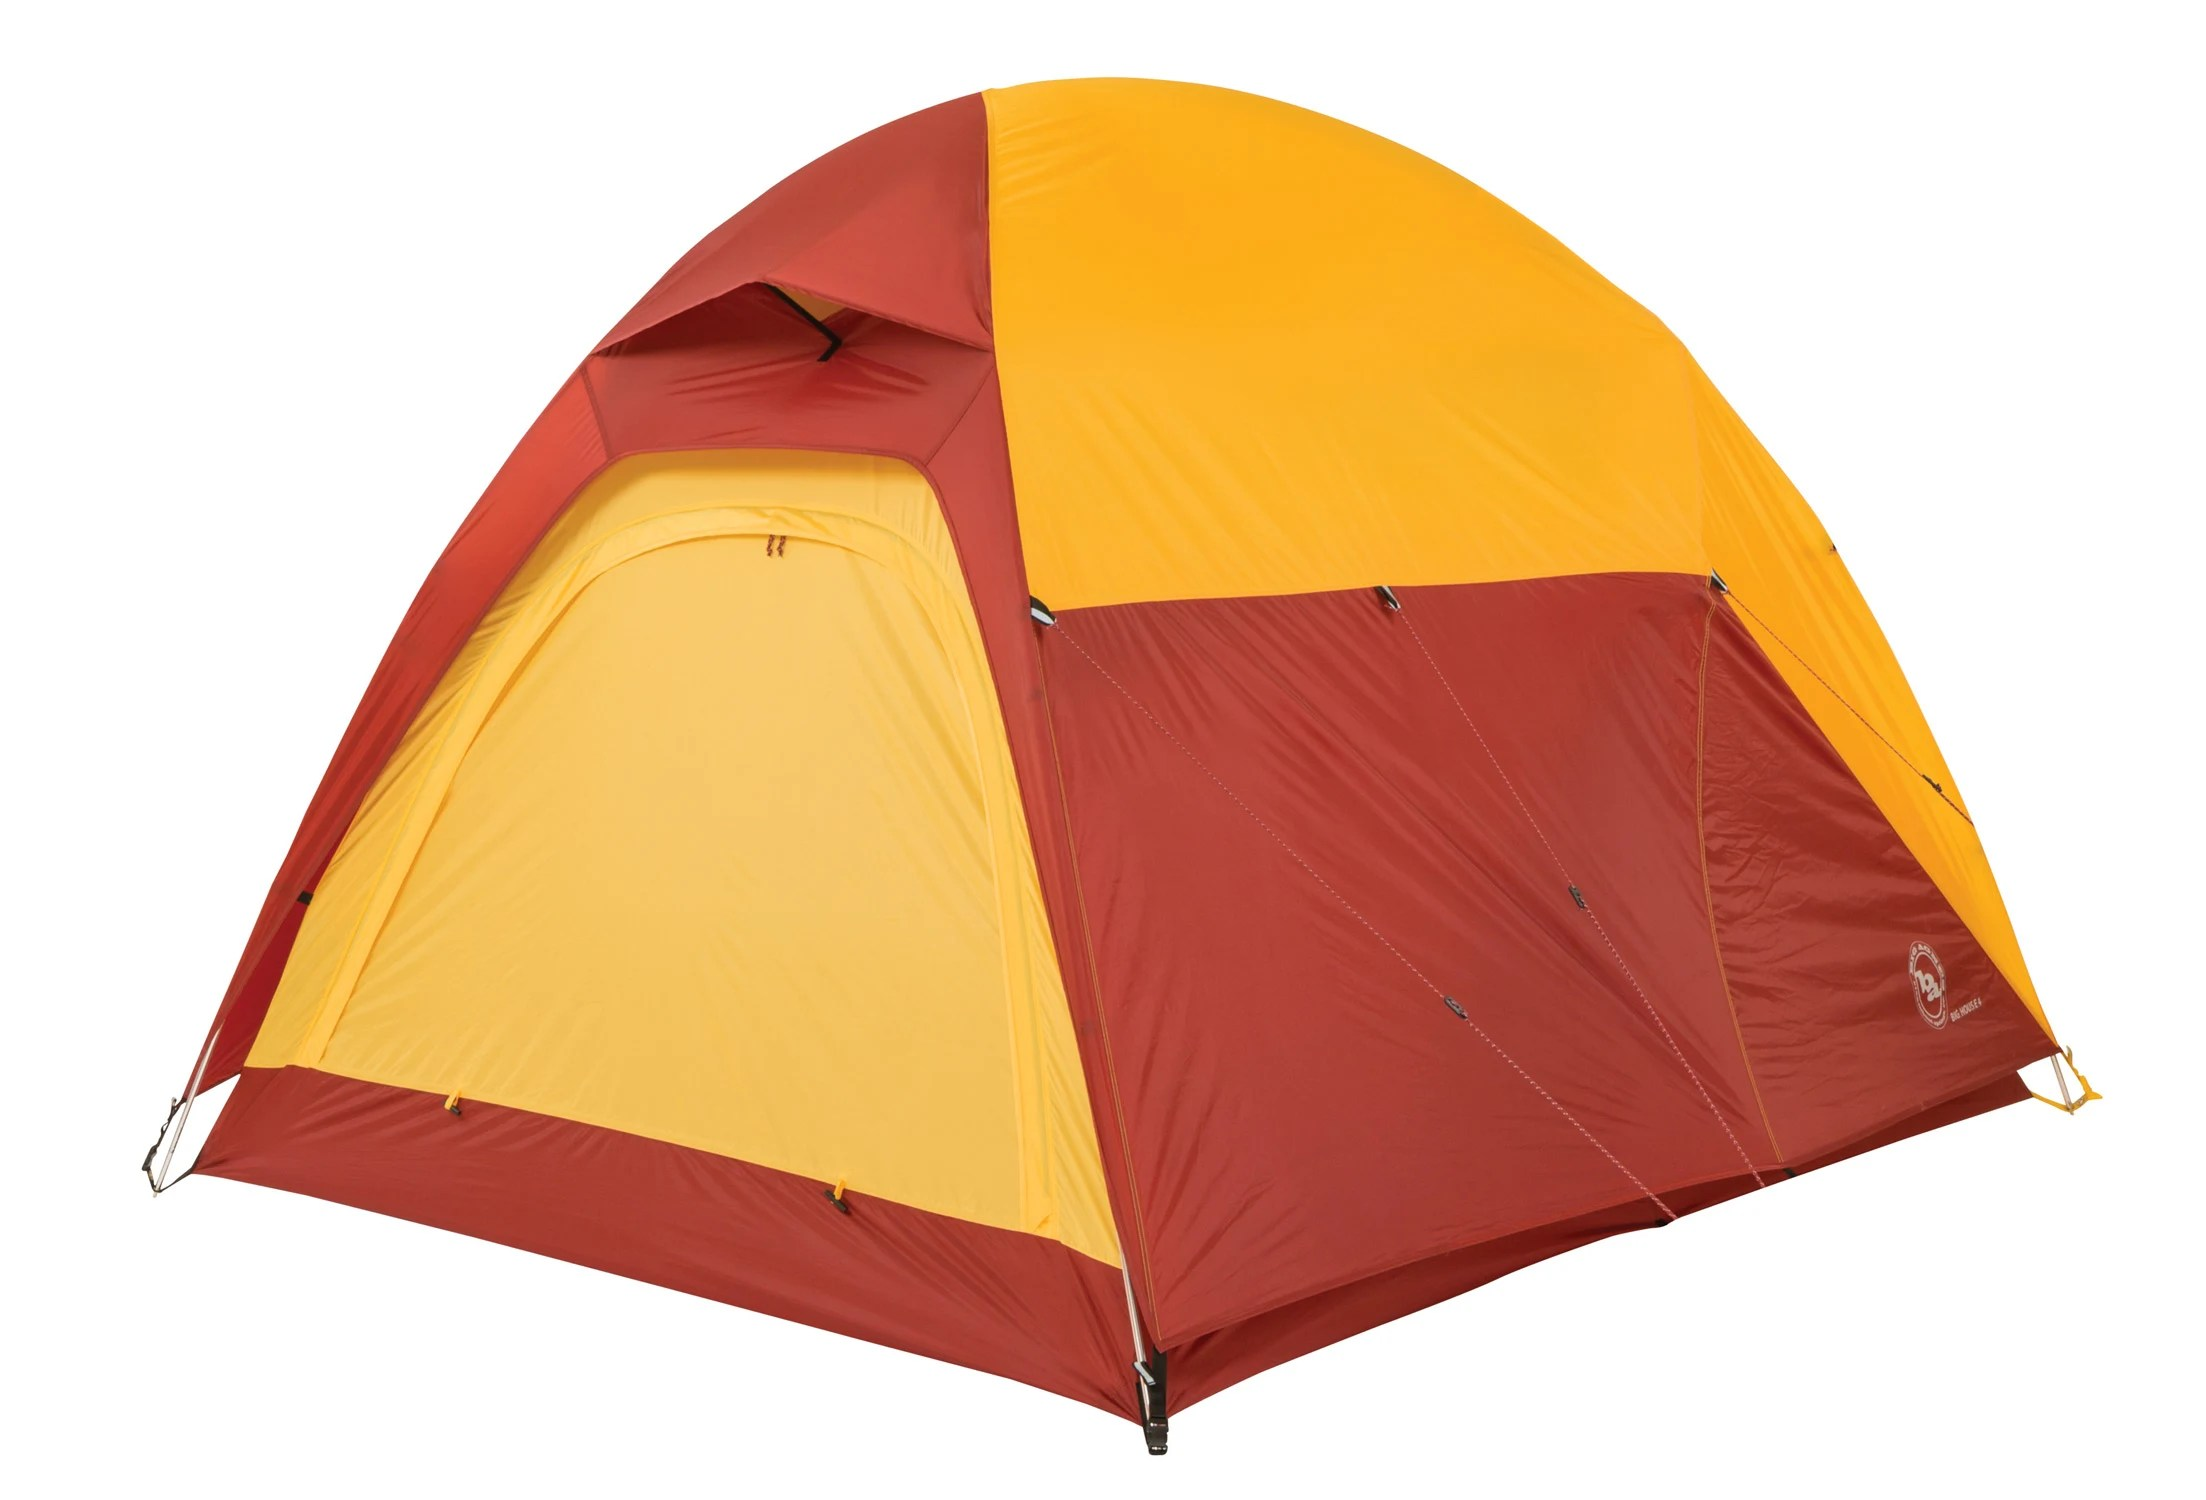 Tents Big 5 Best Tent 2017  sc 1 st  Best Tent 2018 & Big 5 Sporting Goods Tents - Best Tent 2018